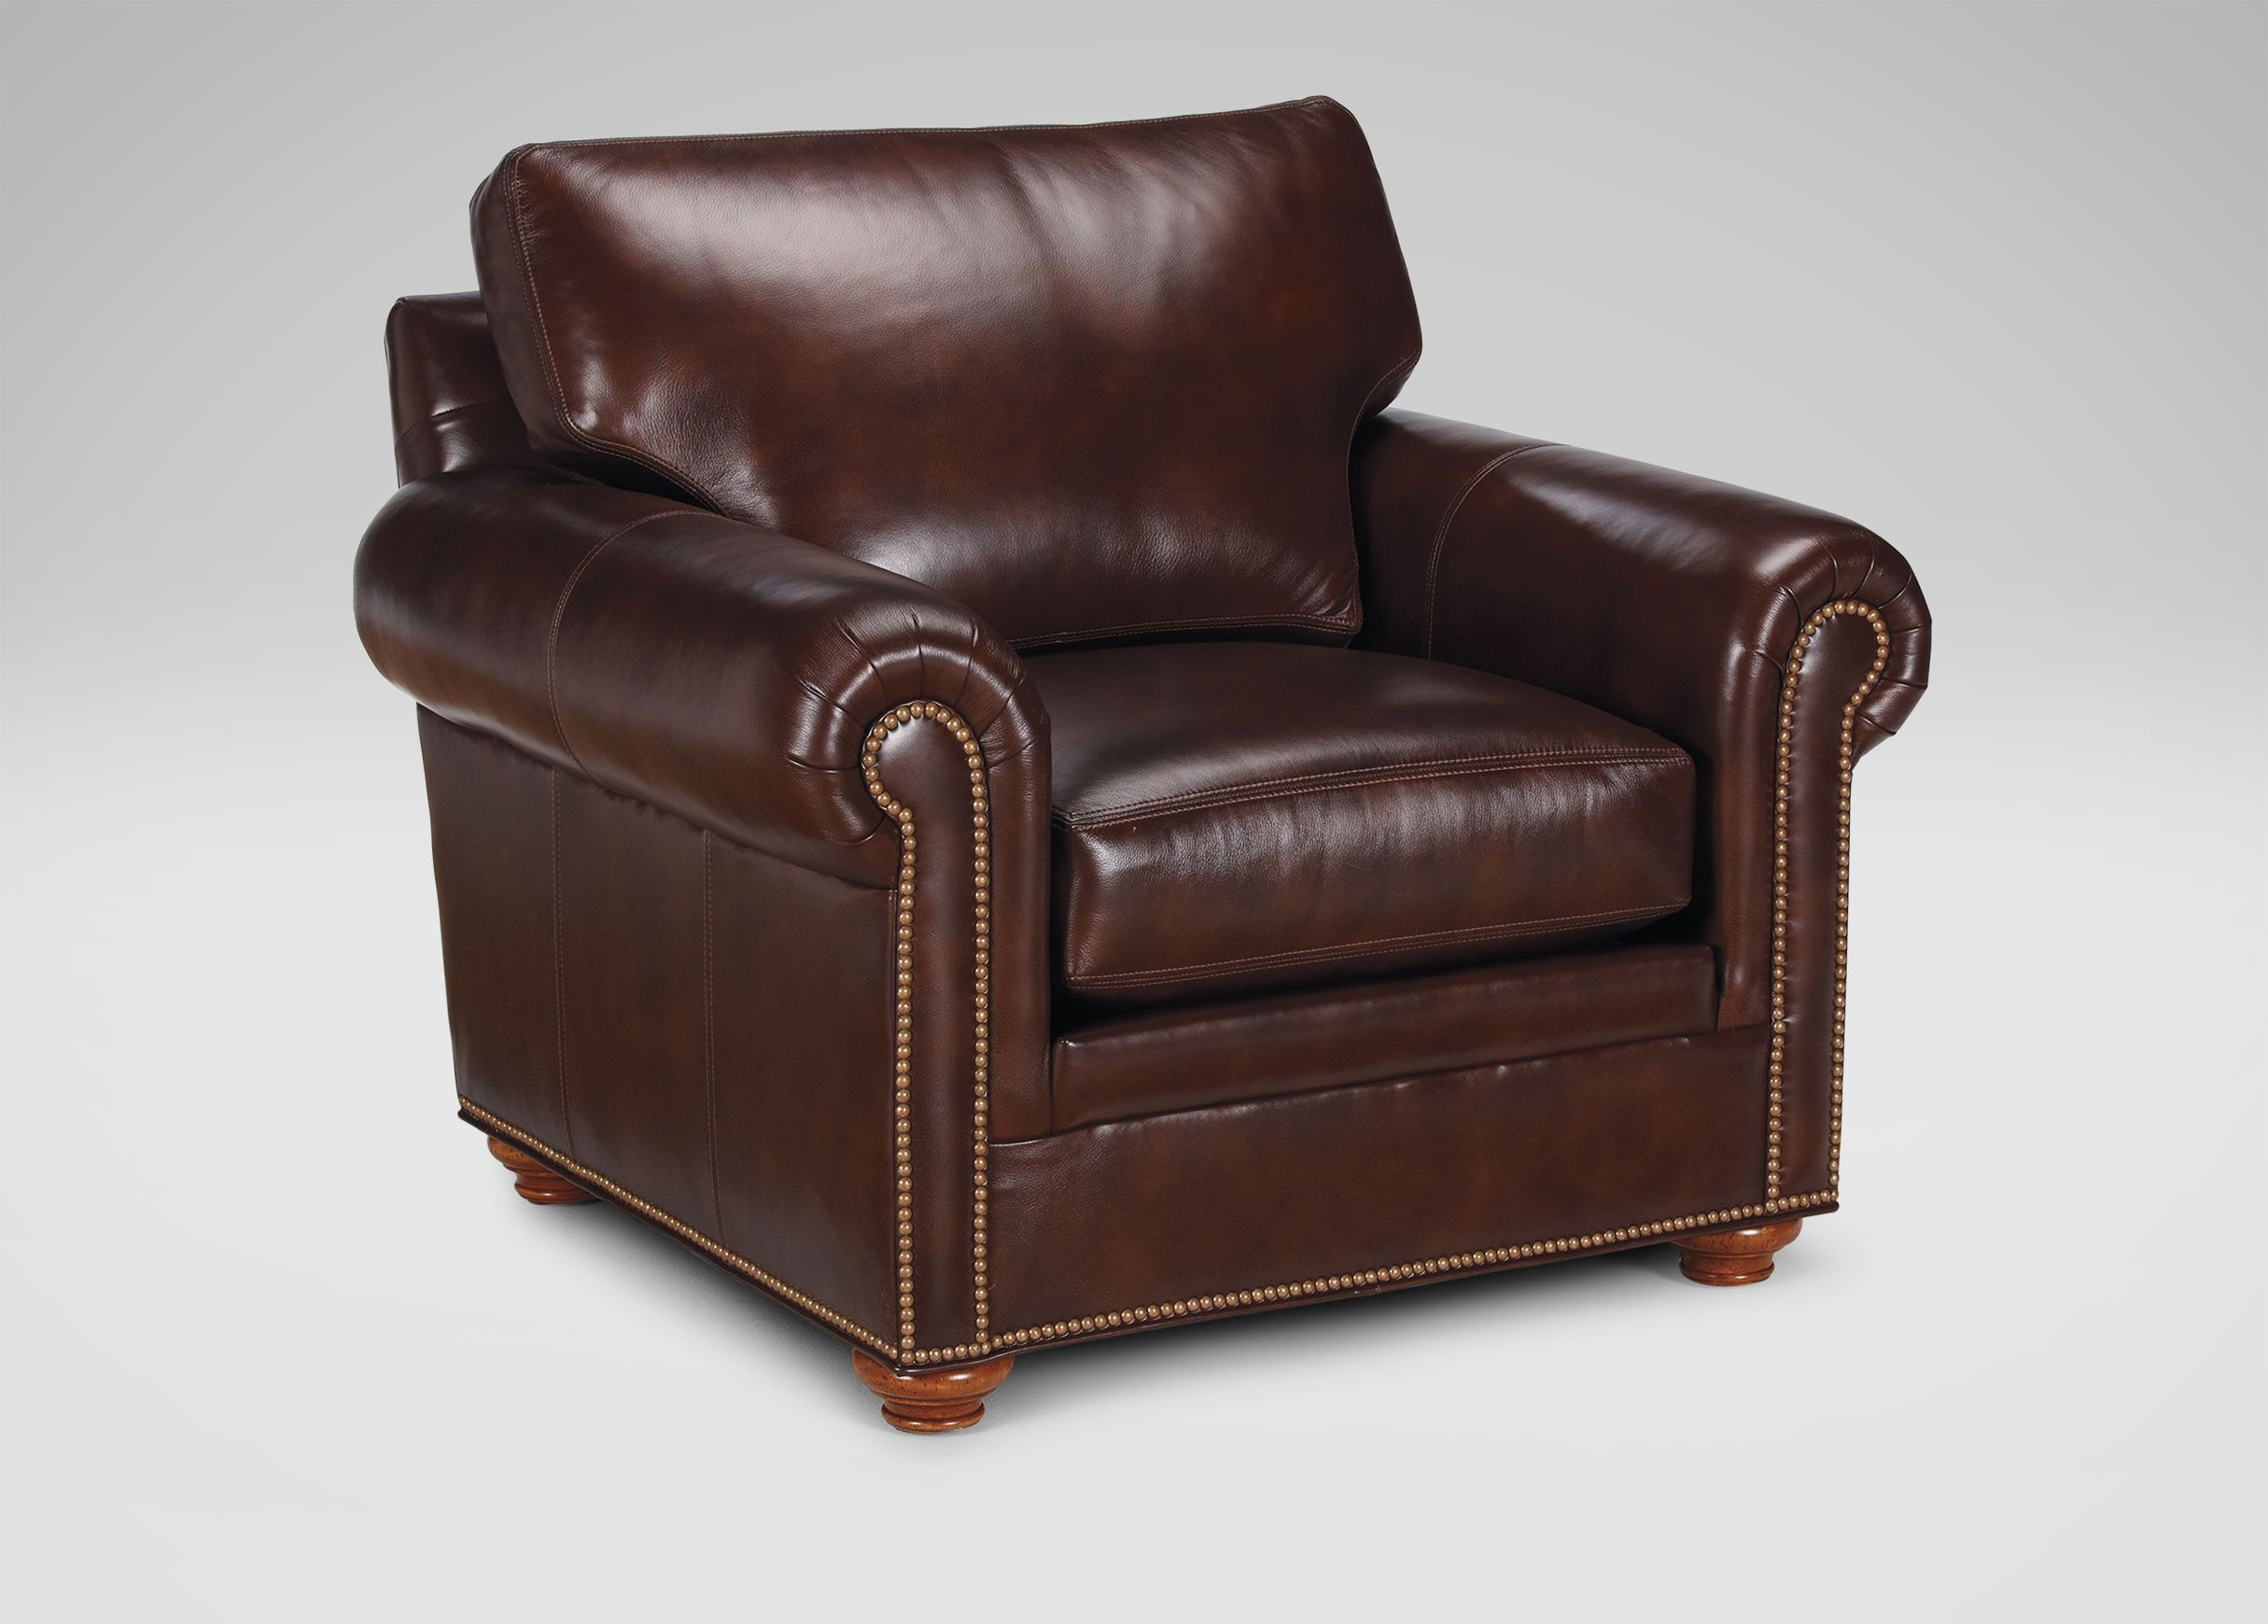 Charming Drawing Of Ethan Allen Leather Furniture